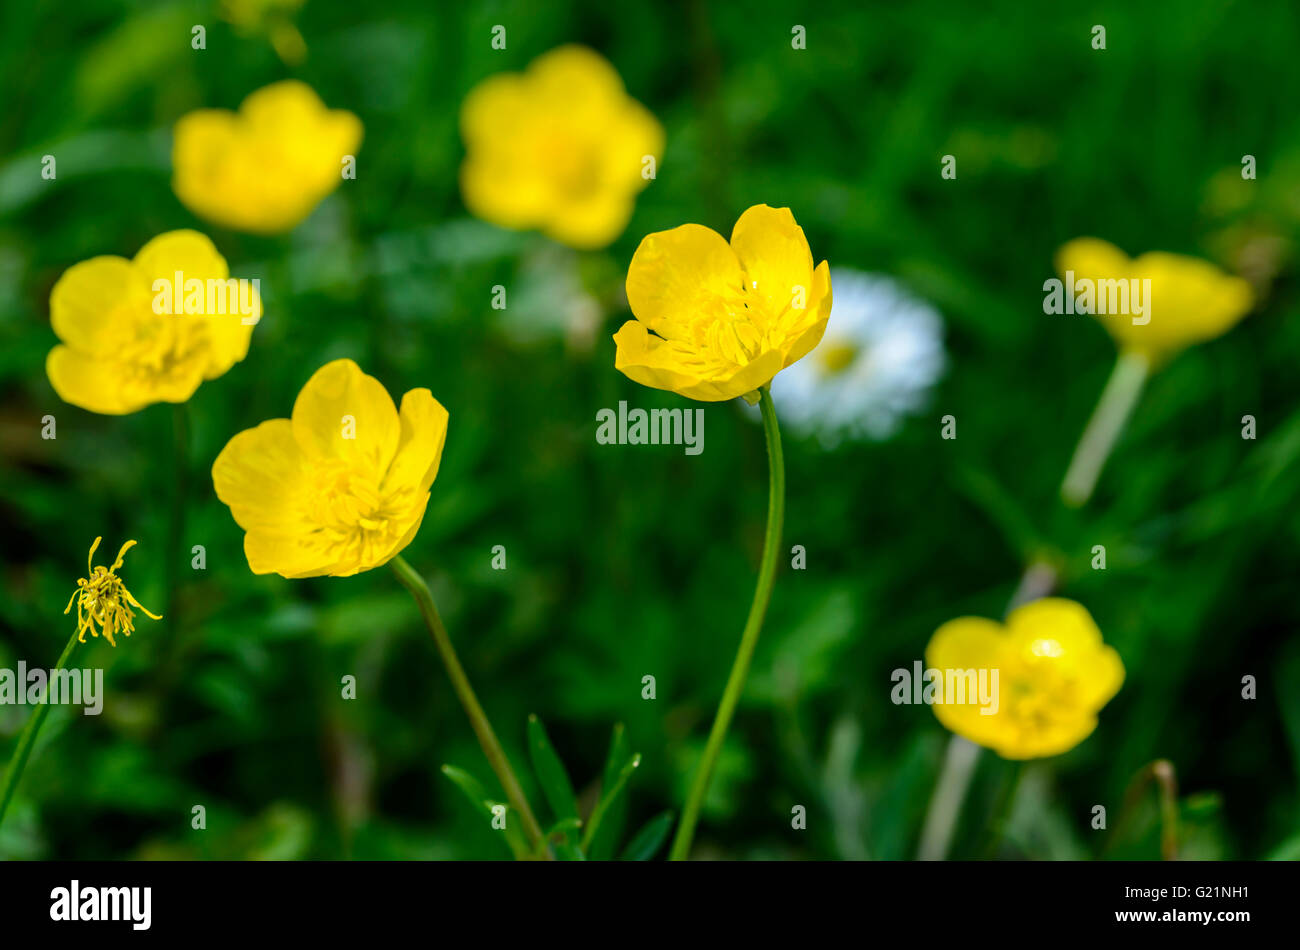 Buttercups (Ranunculus) growing in May in the UK. - Stock Image